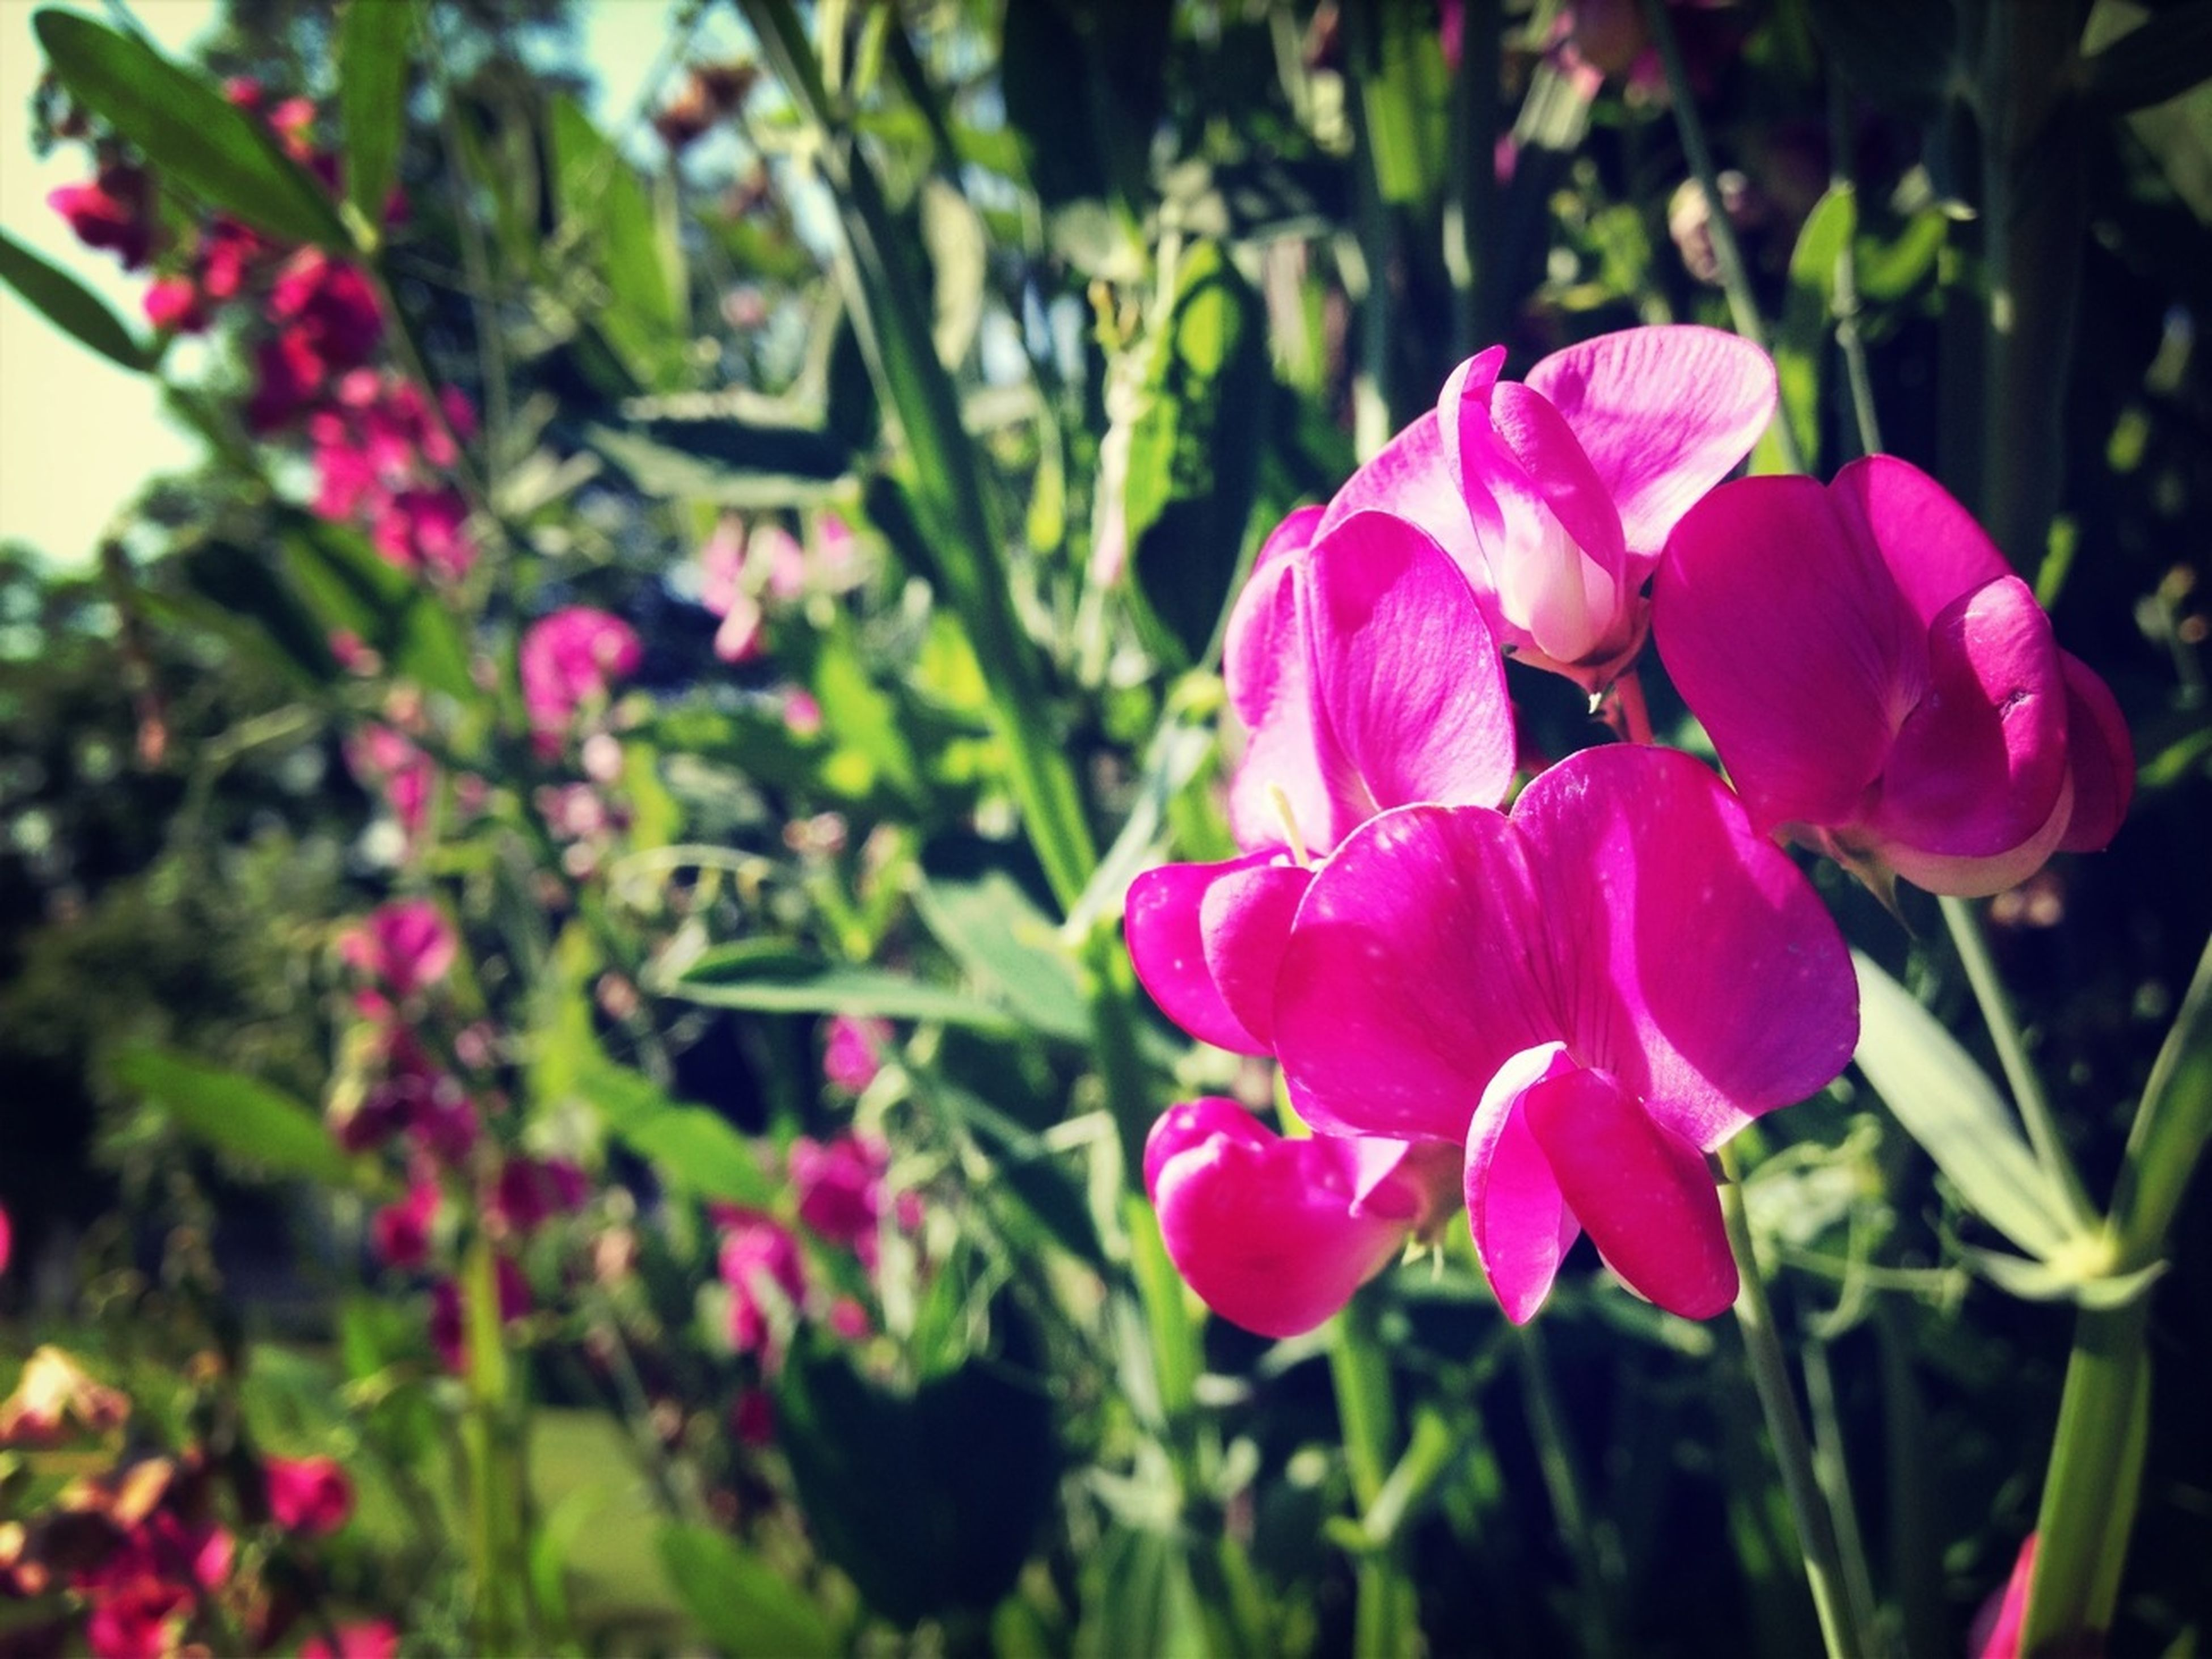 flower, freshness, petal, fragility, growth, pink color, beauty in nature, flower head, blooming, focus on foreground, nature, plant, close-up, in bloom, park - man made space, day, leaf, stem, outdoors, blossom